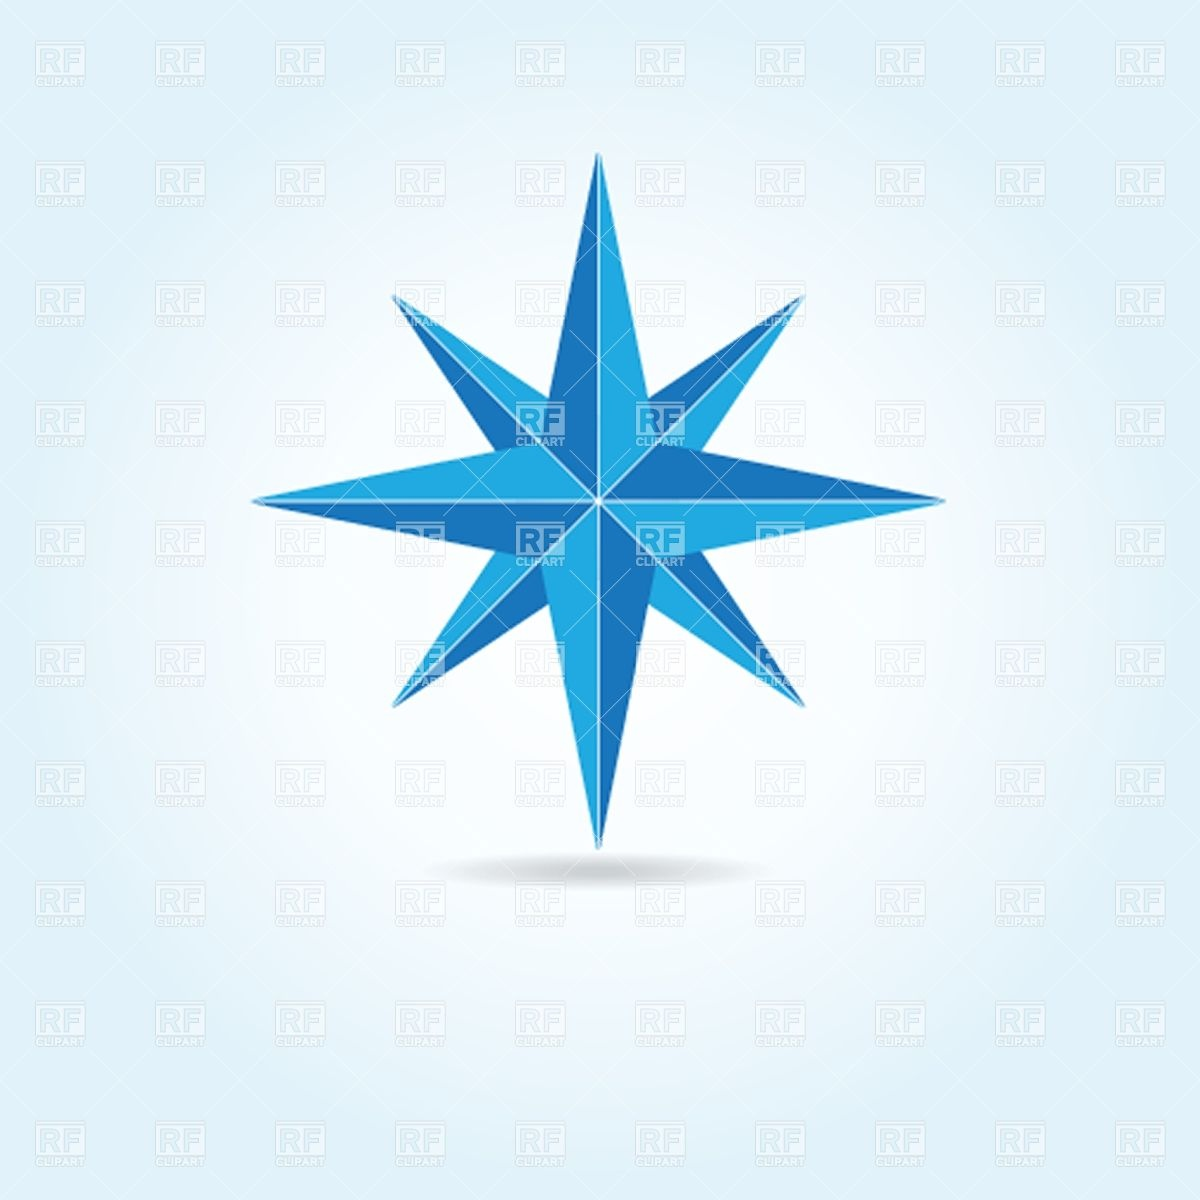 1200x1200 Blue Oldstyle Wind Rose Compass Vector Image Vector Artwork Of